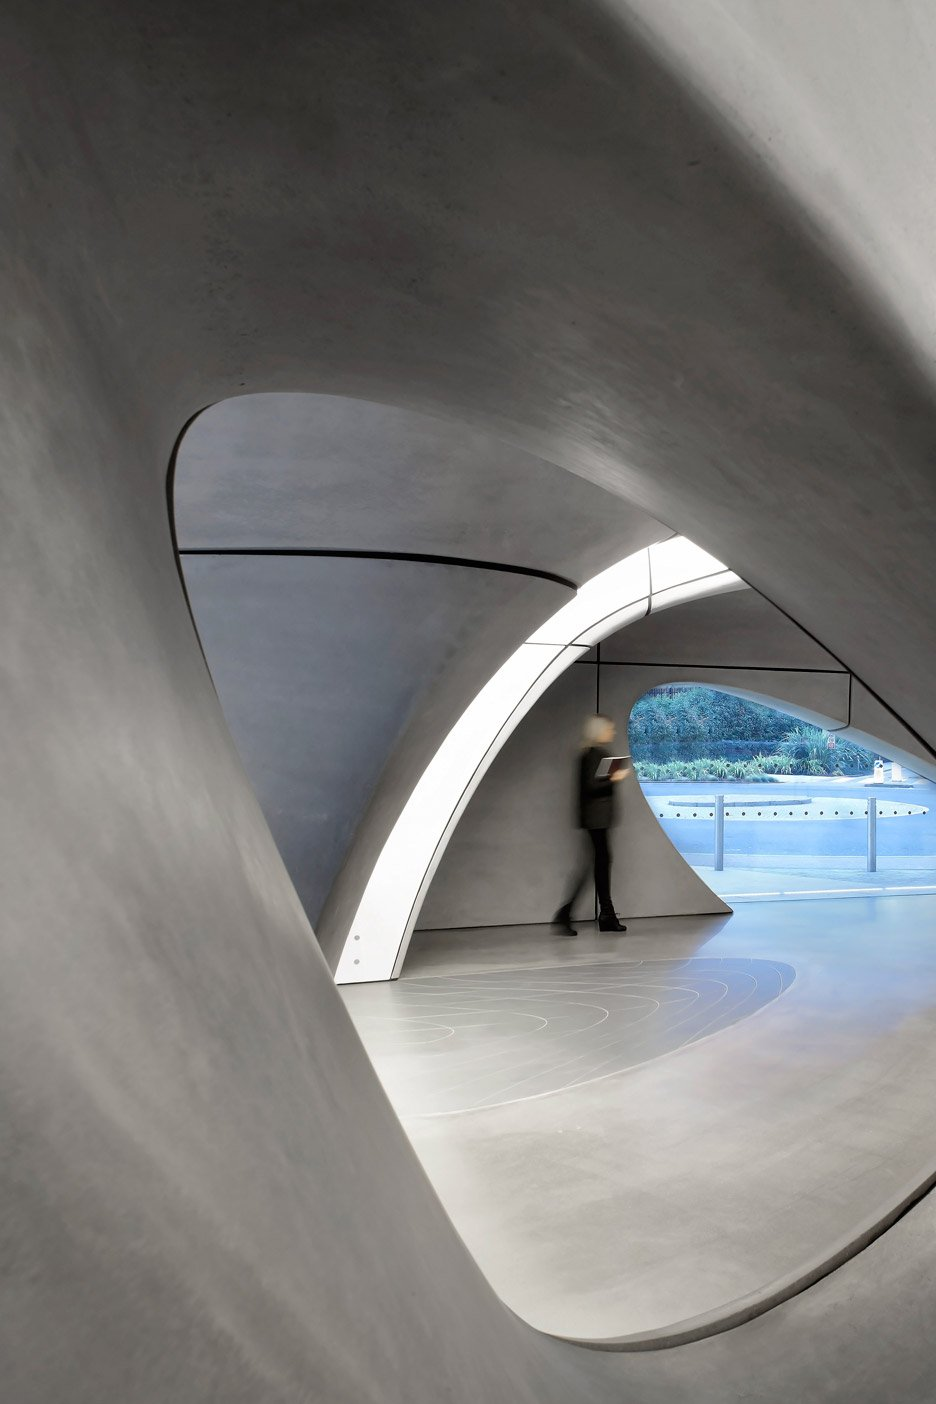 zaha-hadid-key-architecture-projects-photography-hufton-crow_dezeen_936_5